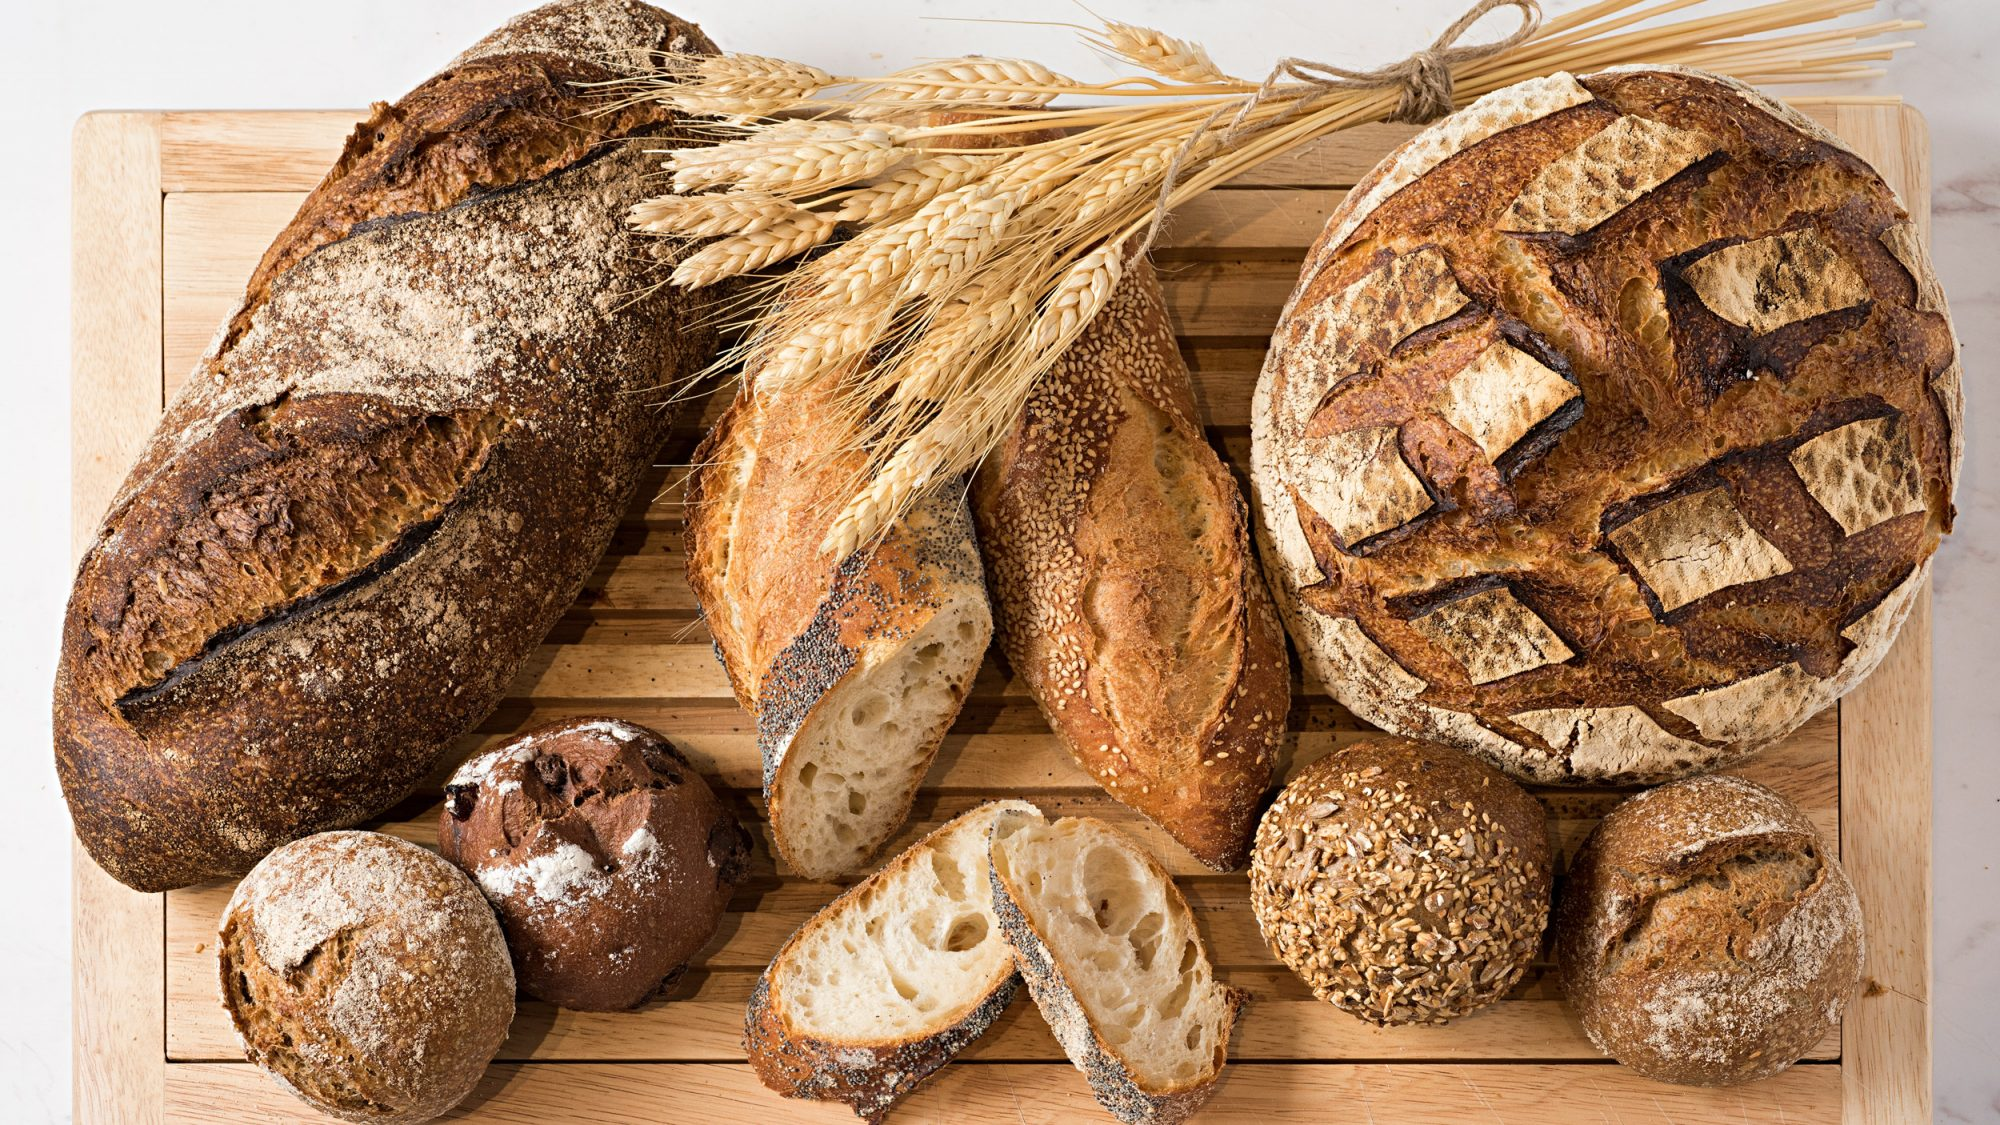 EC: The Case Against 'Whole Wheat' and 'Whole Grain' Bread